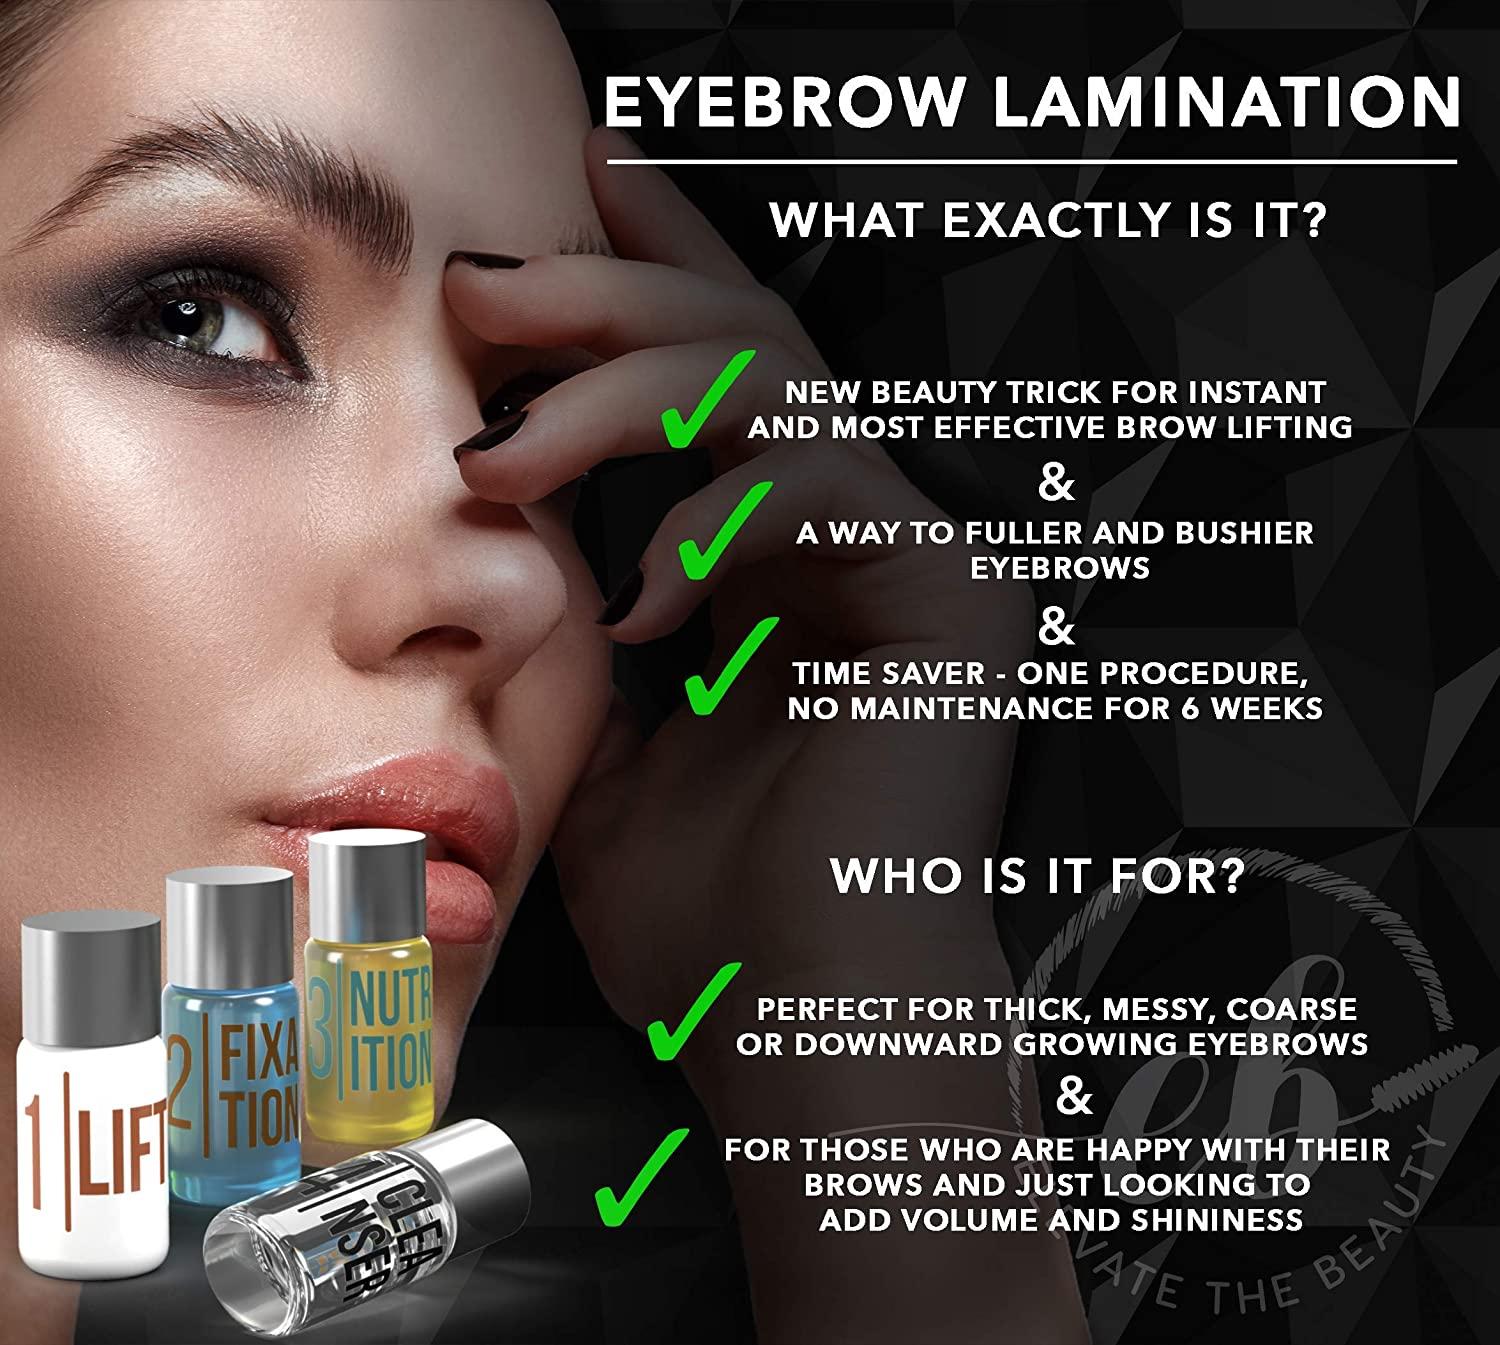 Elevate The Beauty Eyebrow And Lash Lamination Kit Diy Perm For Lashes And Brows Professional Lift For Trendy Fuller Brow Look And Curled Lashes Eyebrow Brush And Eyelash Micro